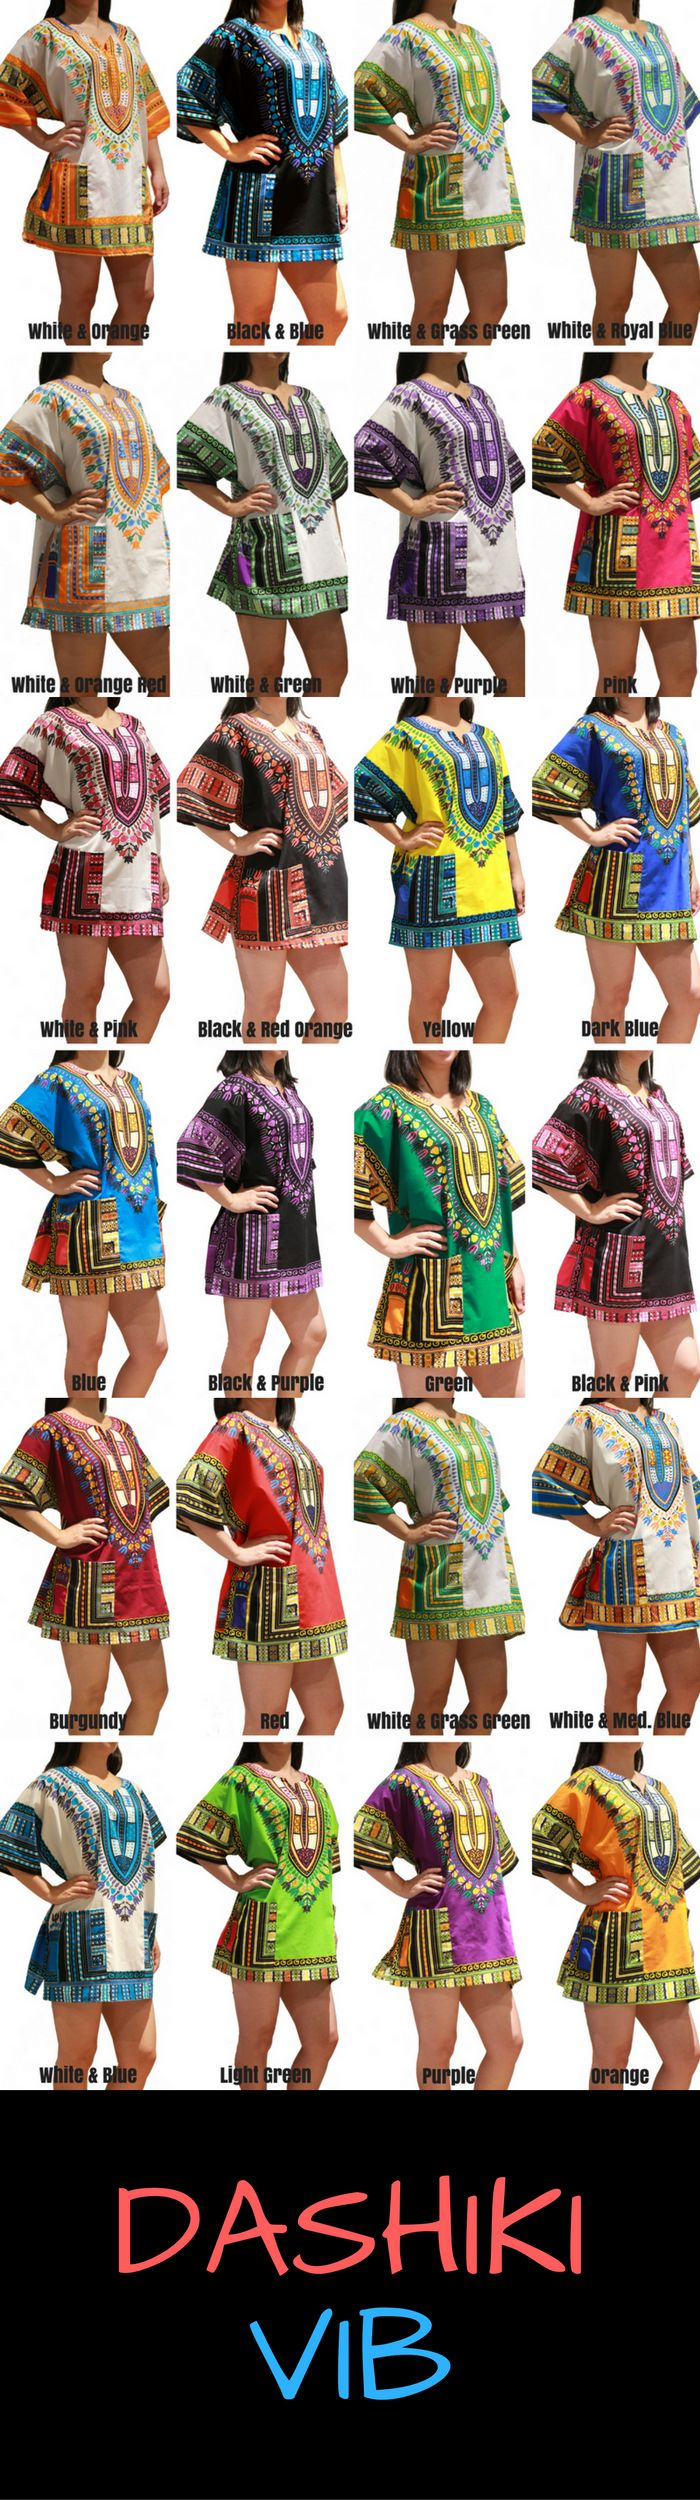 Beautiful Vibrant Dashiki Shirts - dashikivib.com